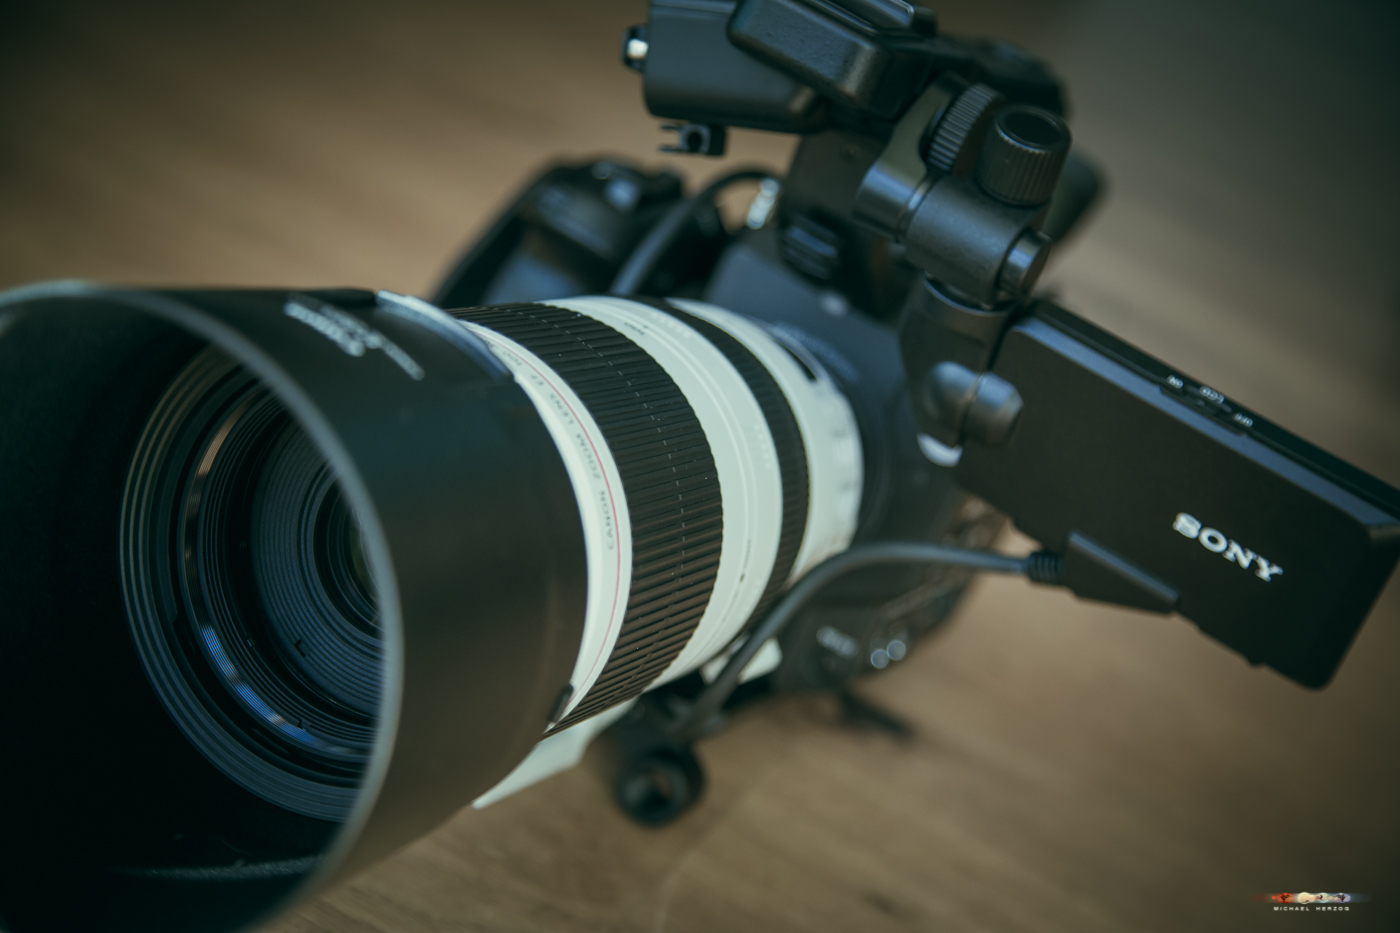 AUTrenalinMEDIA_equipment_canon400mm_foto_kücher-3312-2.jpg